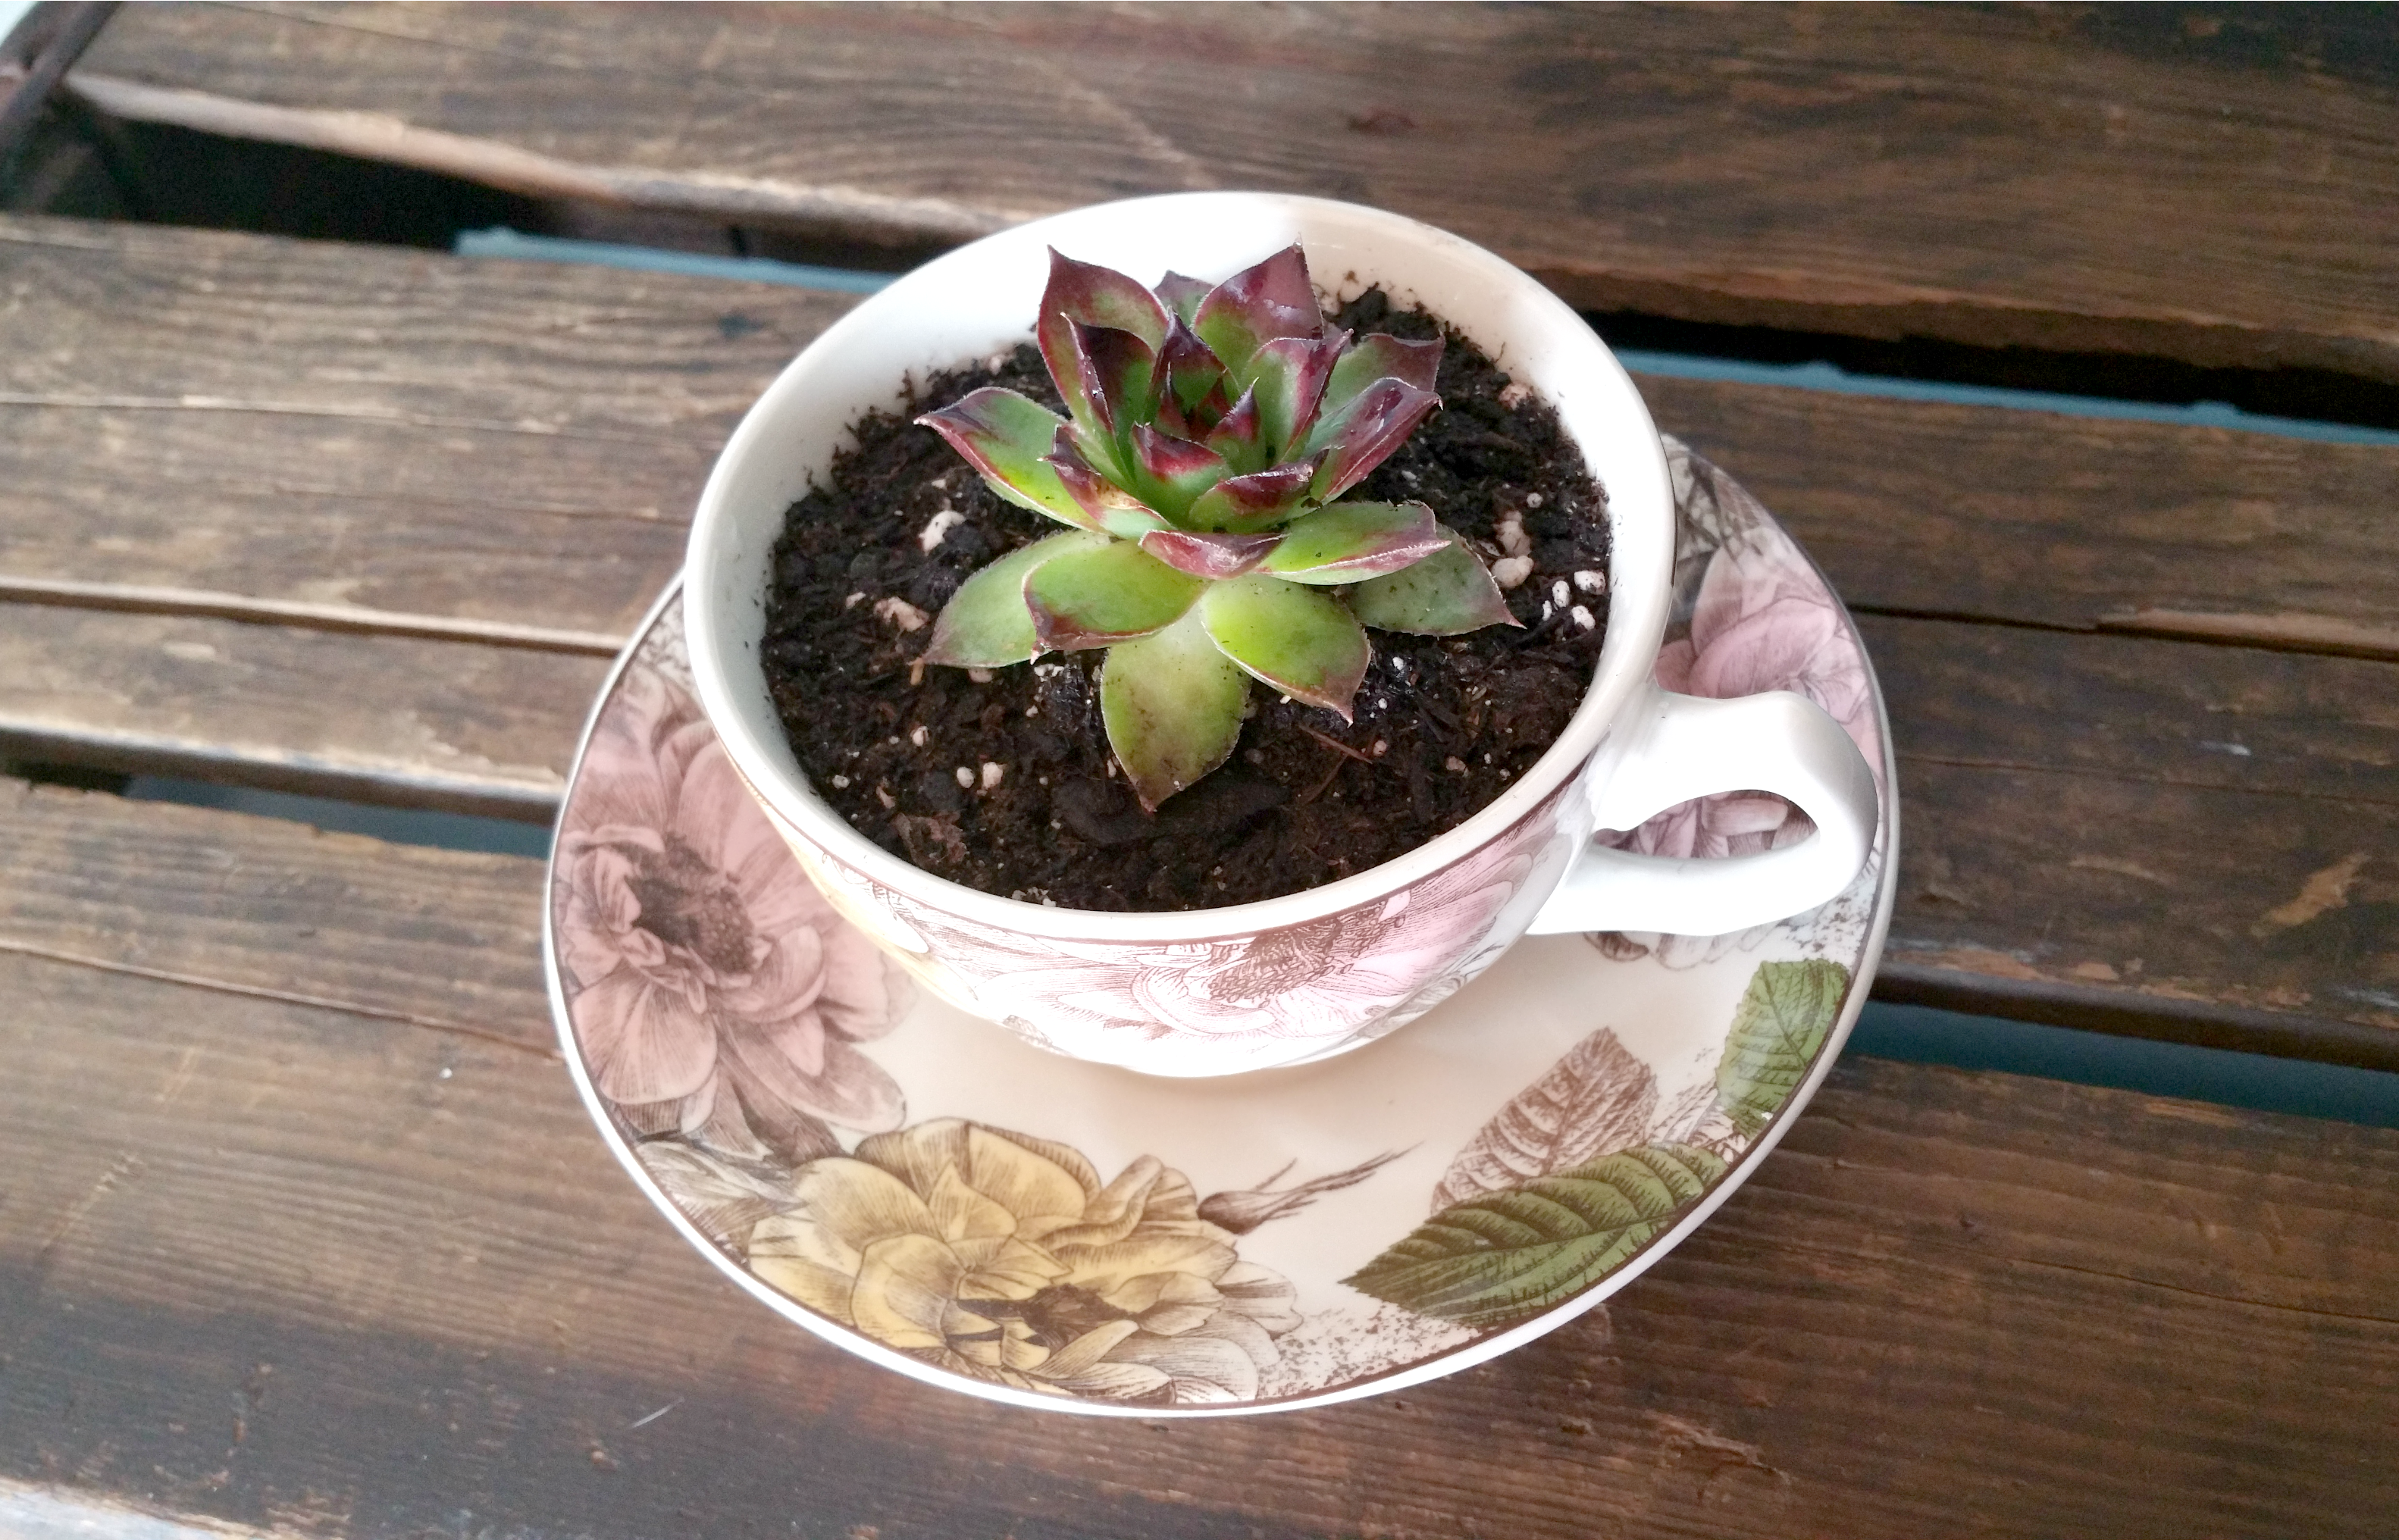 DIY Mother's Day Gift Succulent